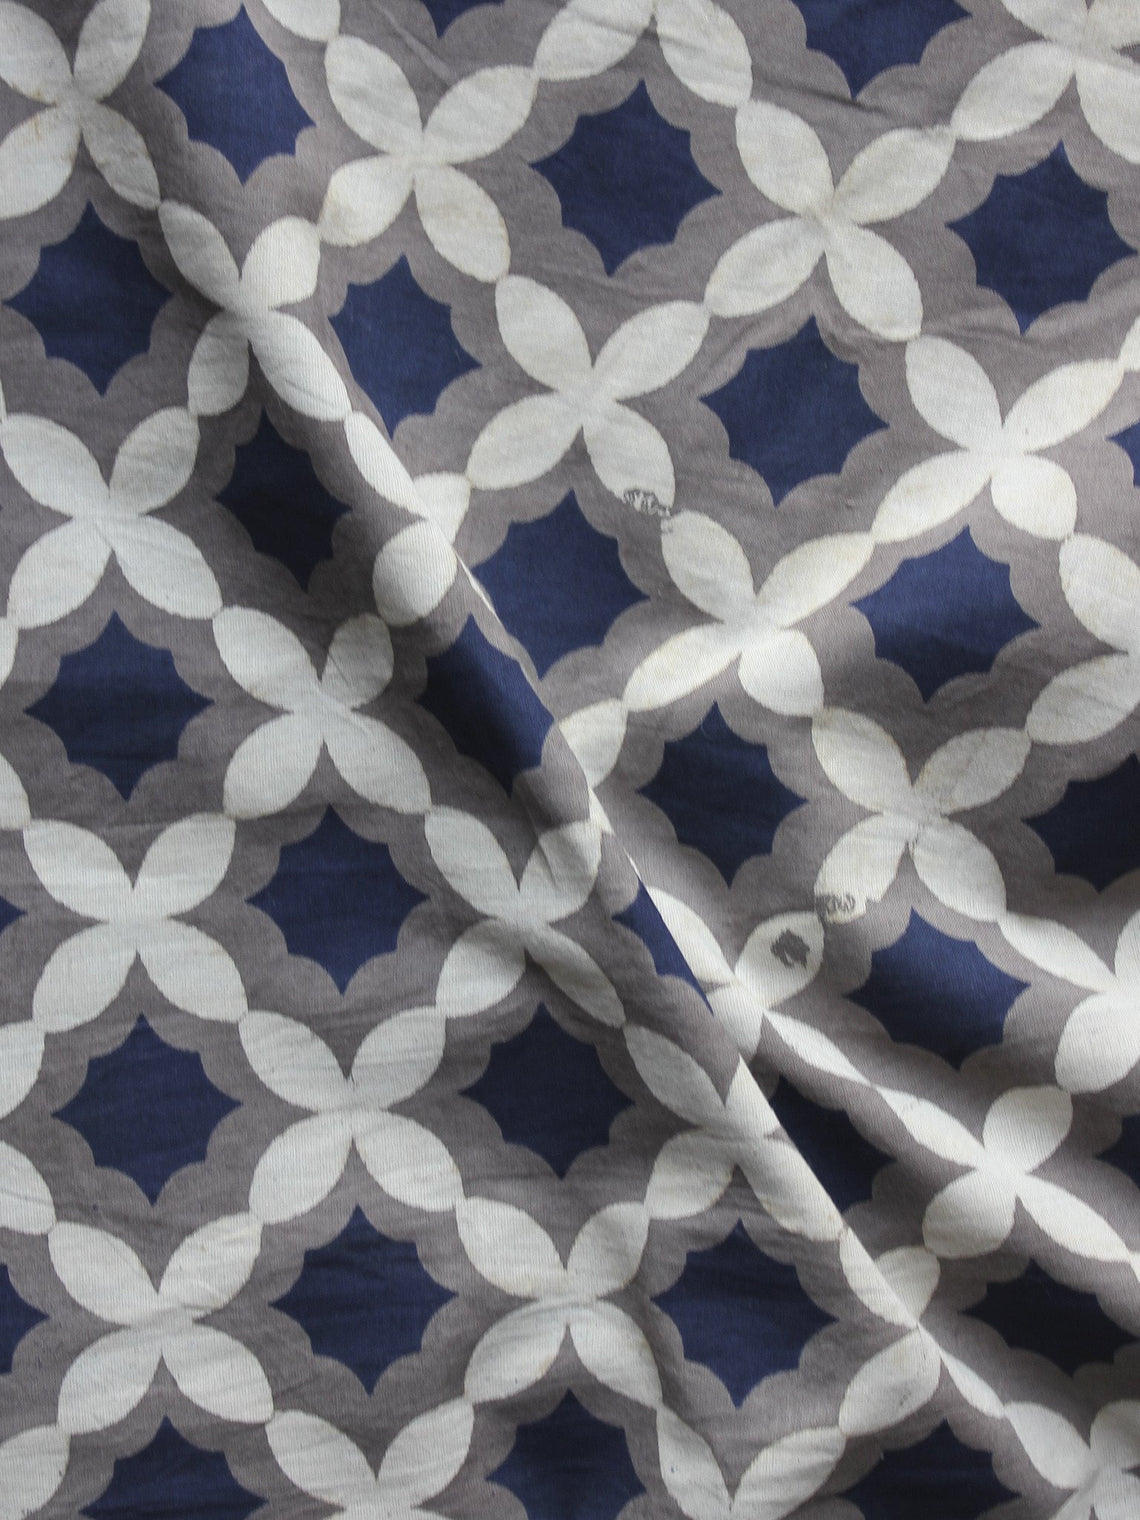 Kashish Ivory Indigo Hand Block Printed Cotton Fabric Per Meter - F001F875